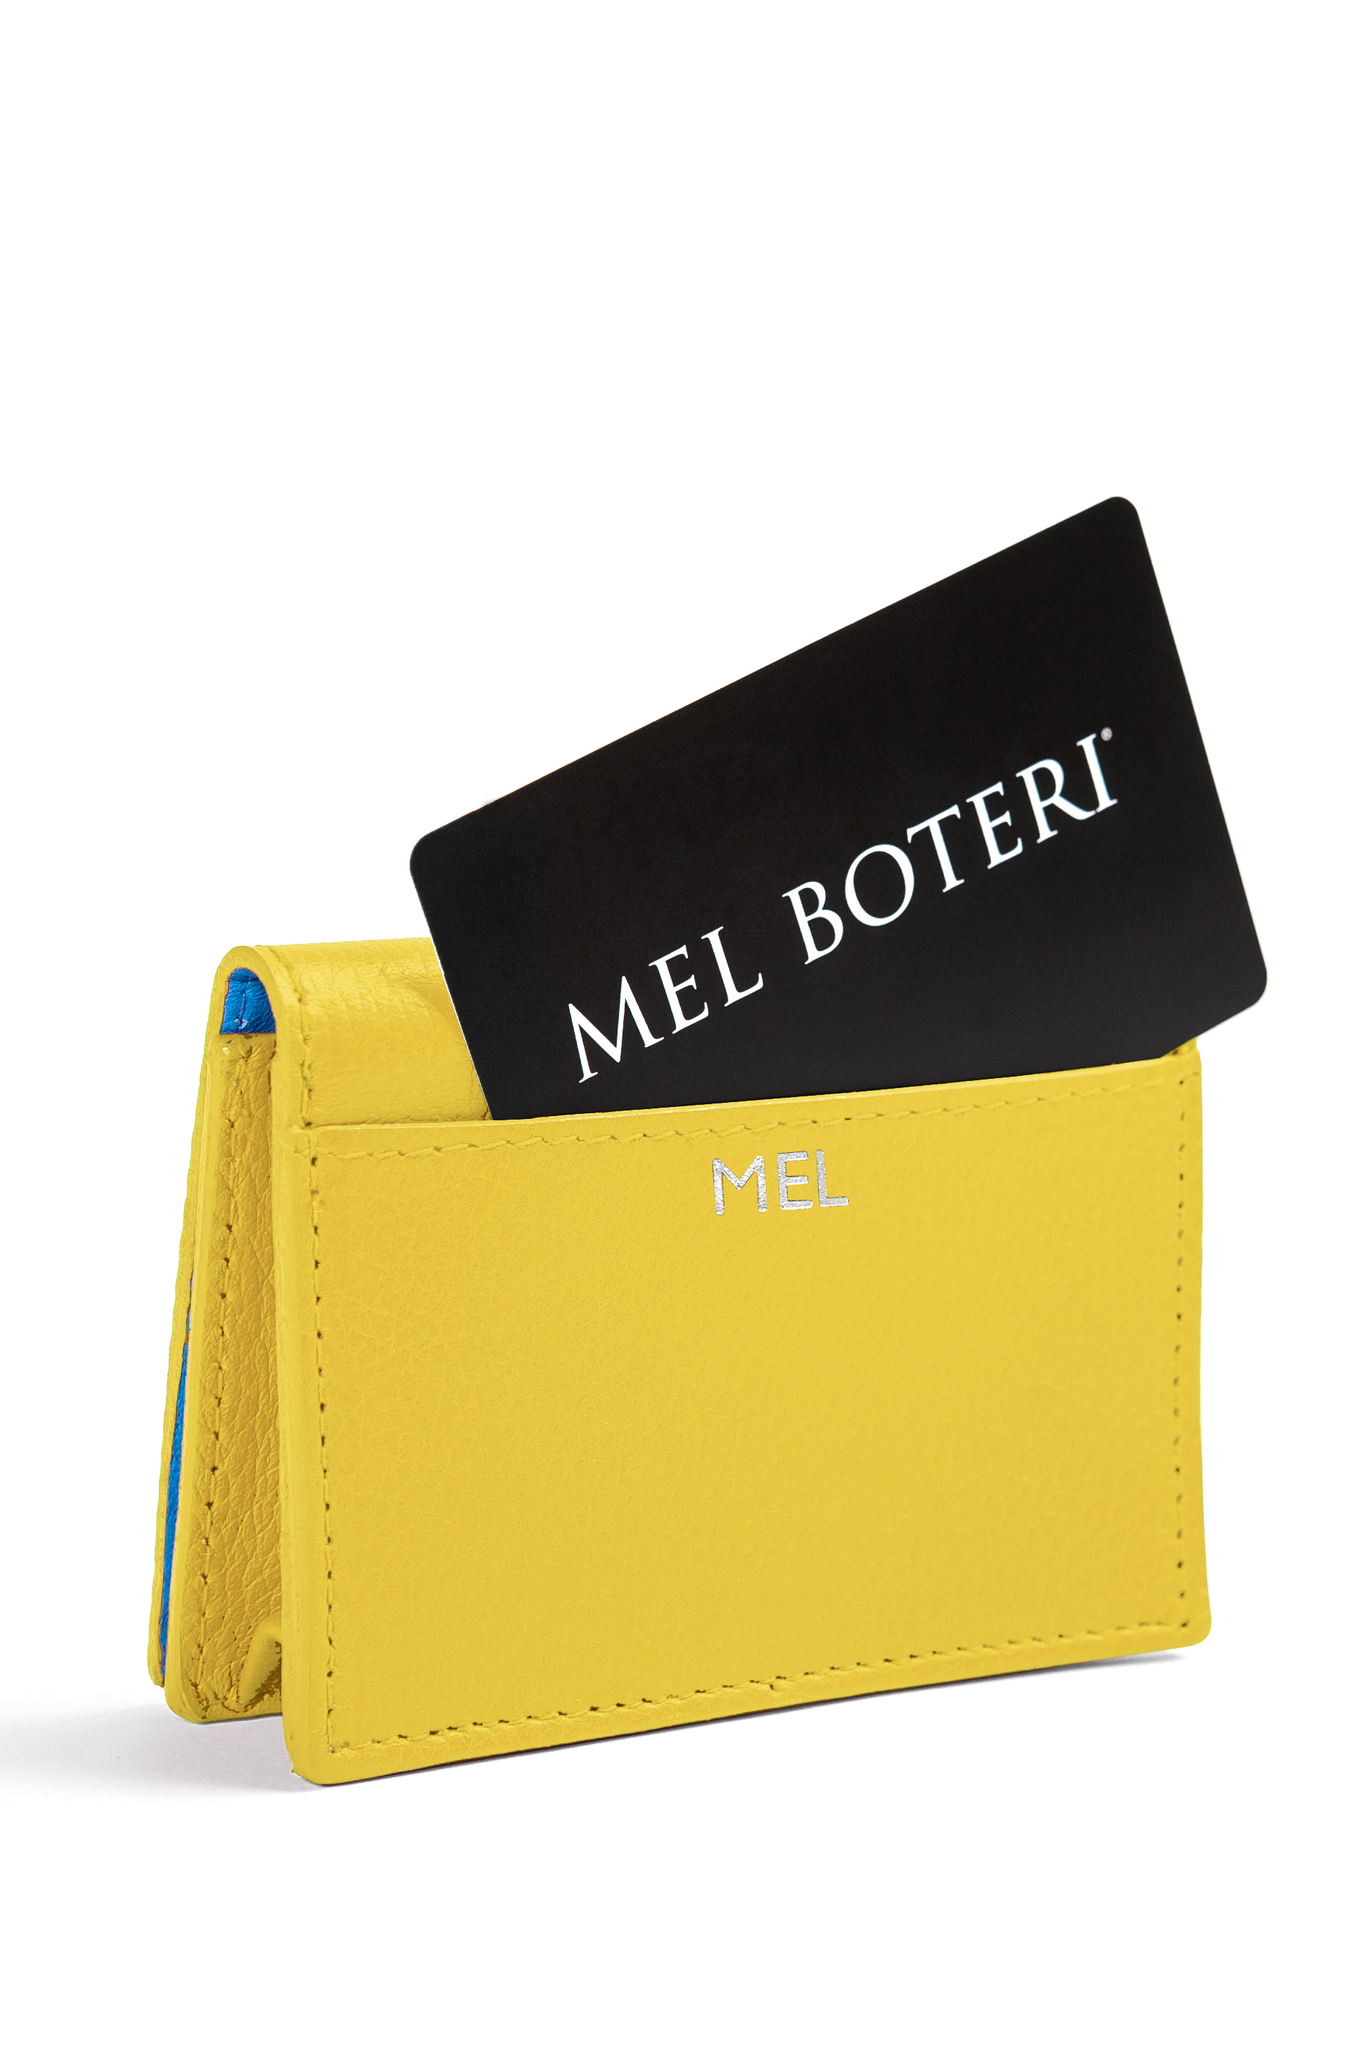 The Mel Boteri Leather Card Holder | Lemon Leather With Silver Monogram | Mel Boteri Gift Ideas | Design Your Own